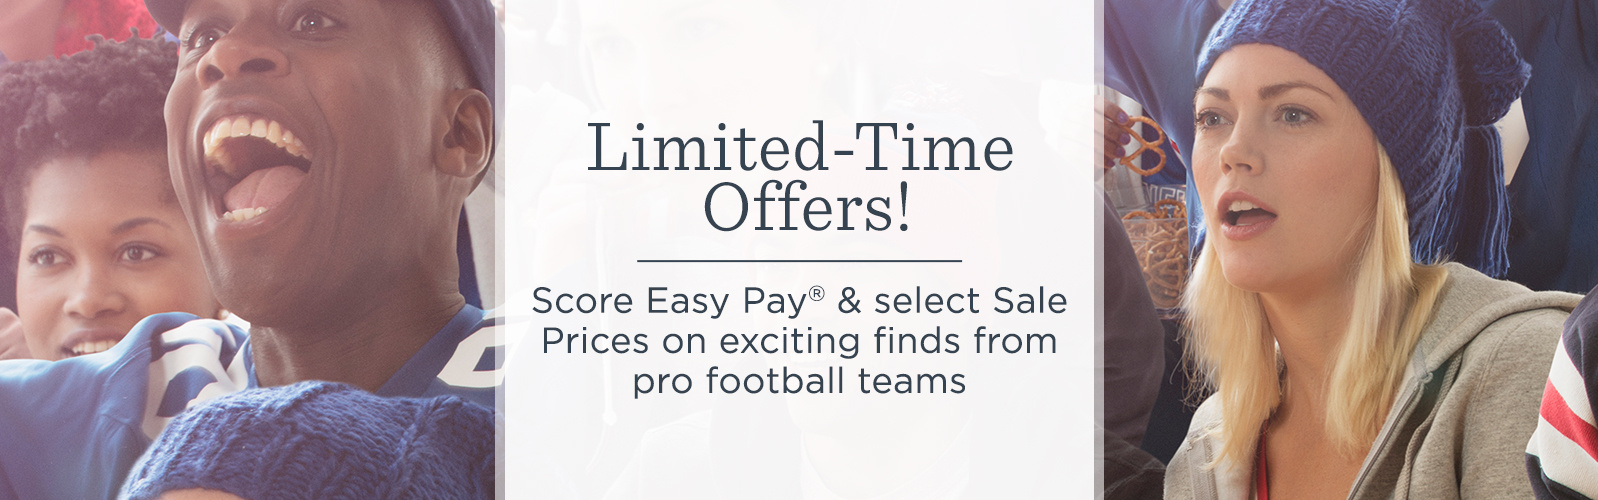 Limited-Time Offers! Score Easy Pay® & select Sale Prices on exciting finds from pro football teams